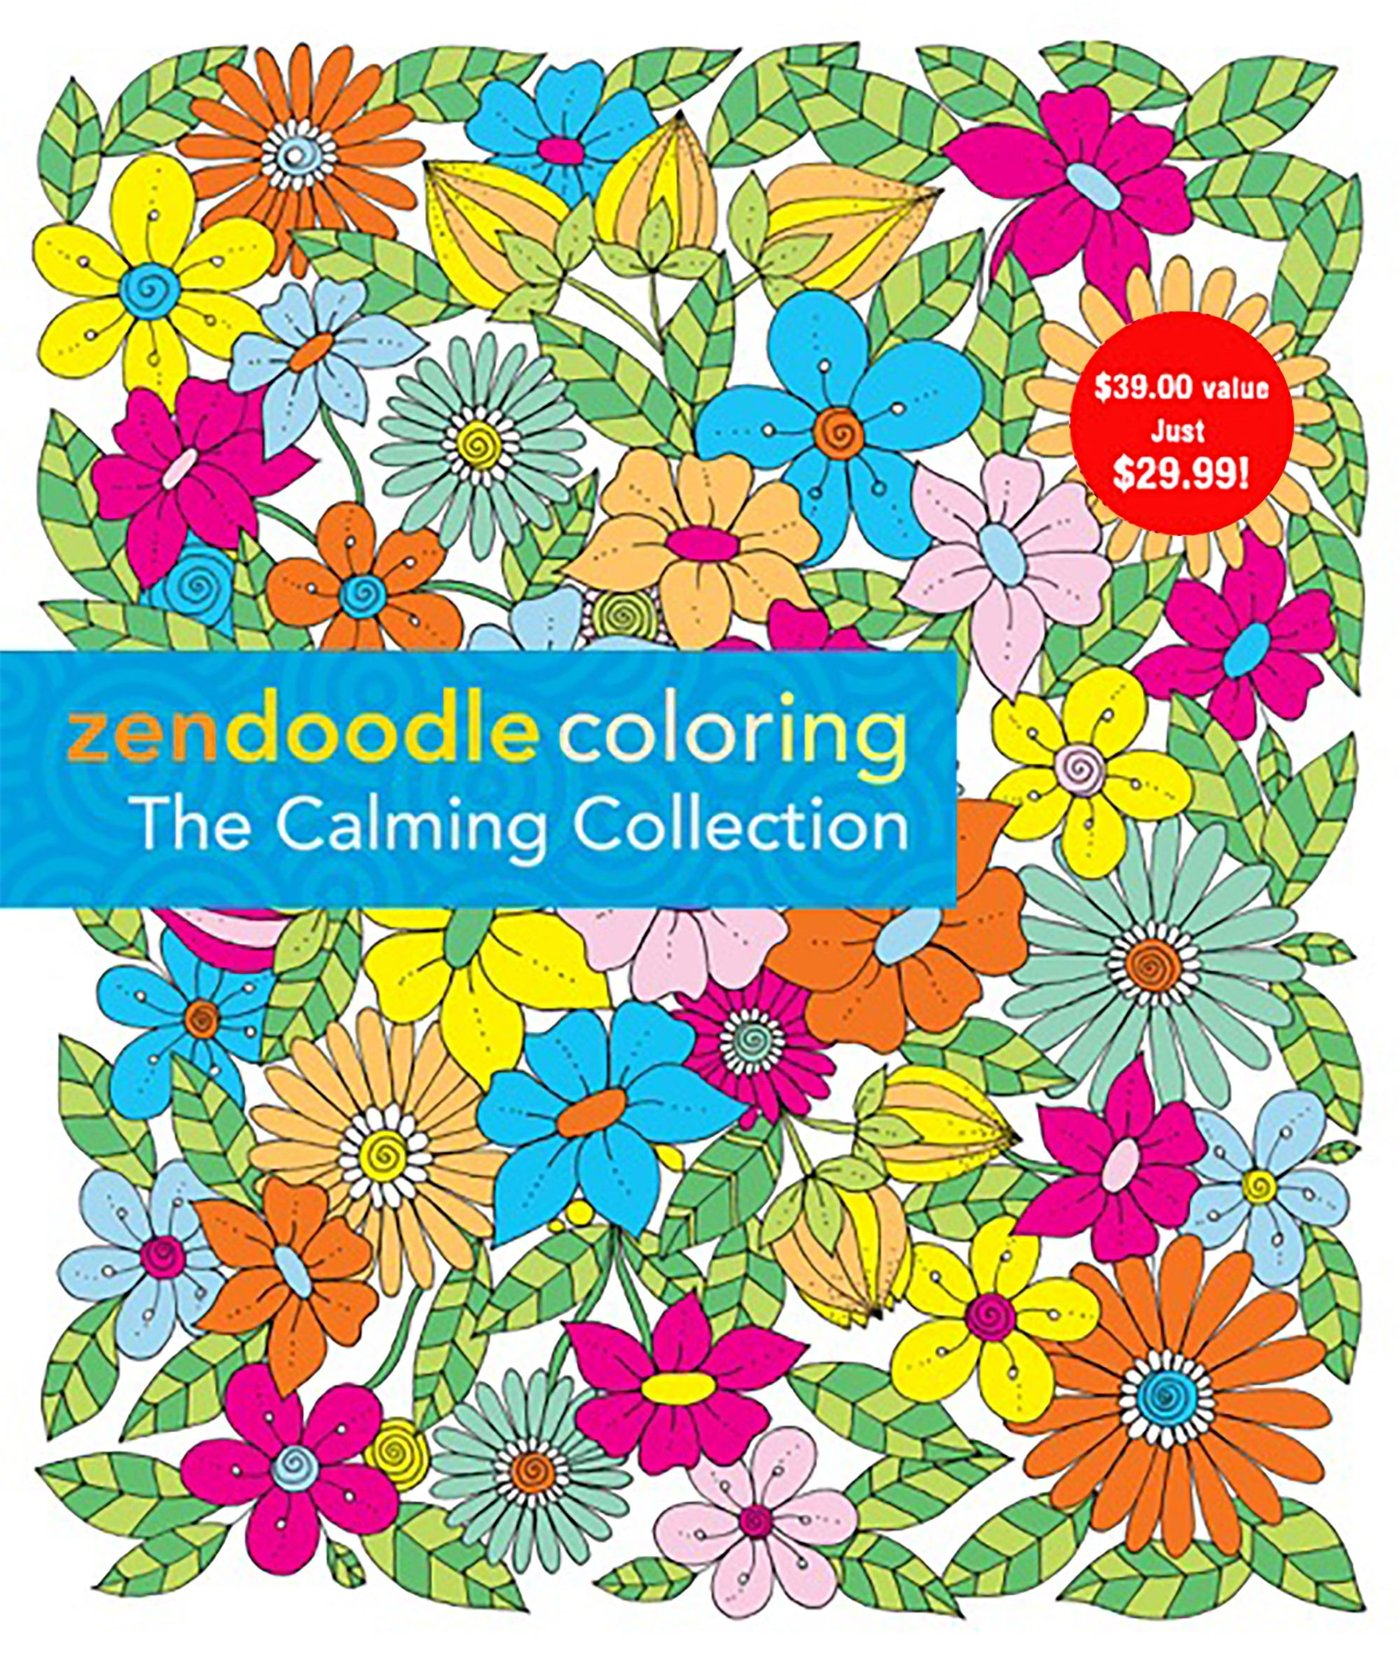 Zendoodle Calming Collection Box Set: Enchanting Gardens, Calming Swirls, and Uplifting Inspirations (Zendoodle Coloring)